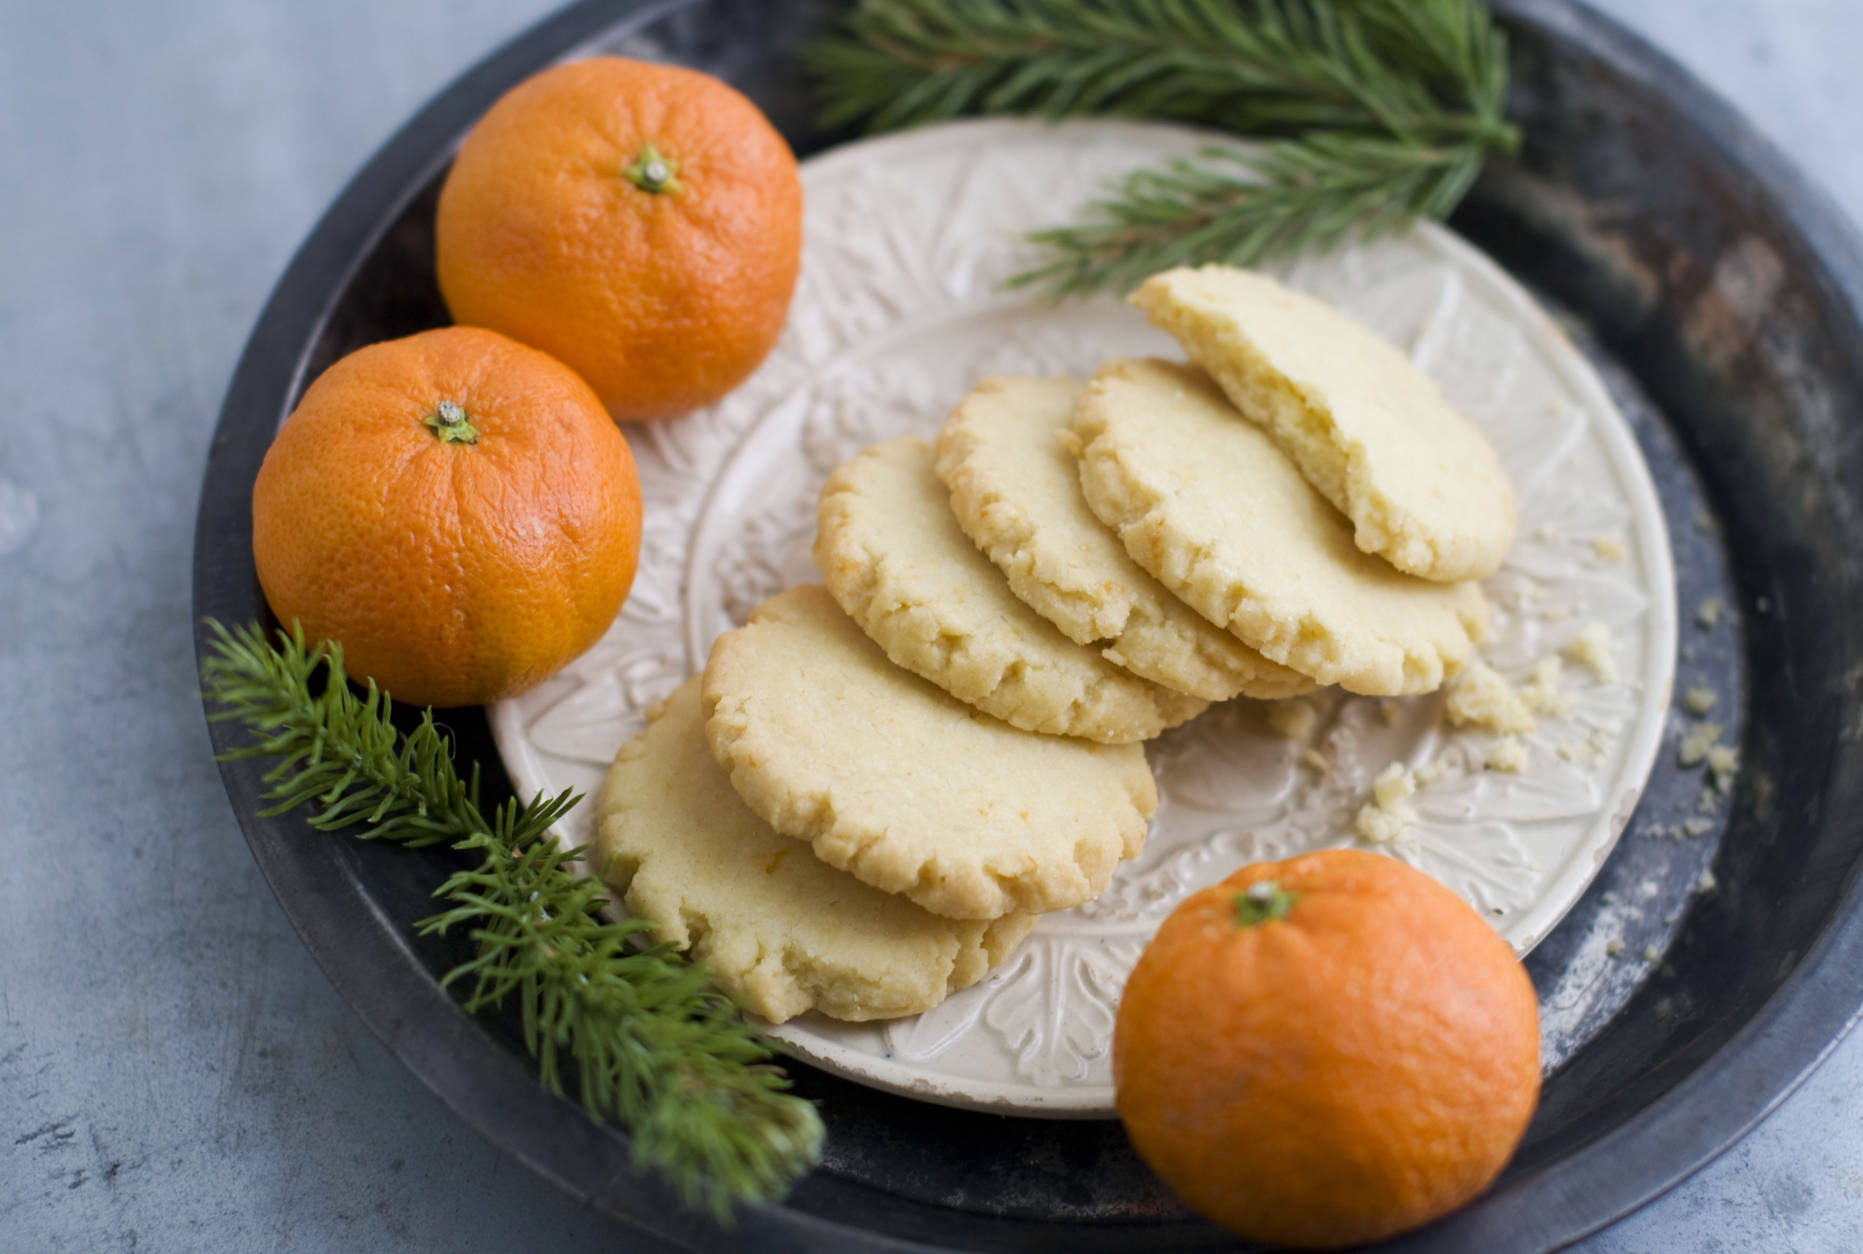 In this image taken on Monday, Nov. 5, 2012, tangerine mace shortbread cookies are shown served on a plate in Concord, N.H. (AP Photo/Matthew Mead)